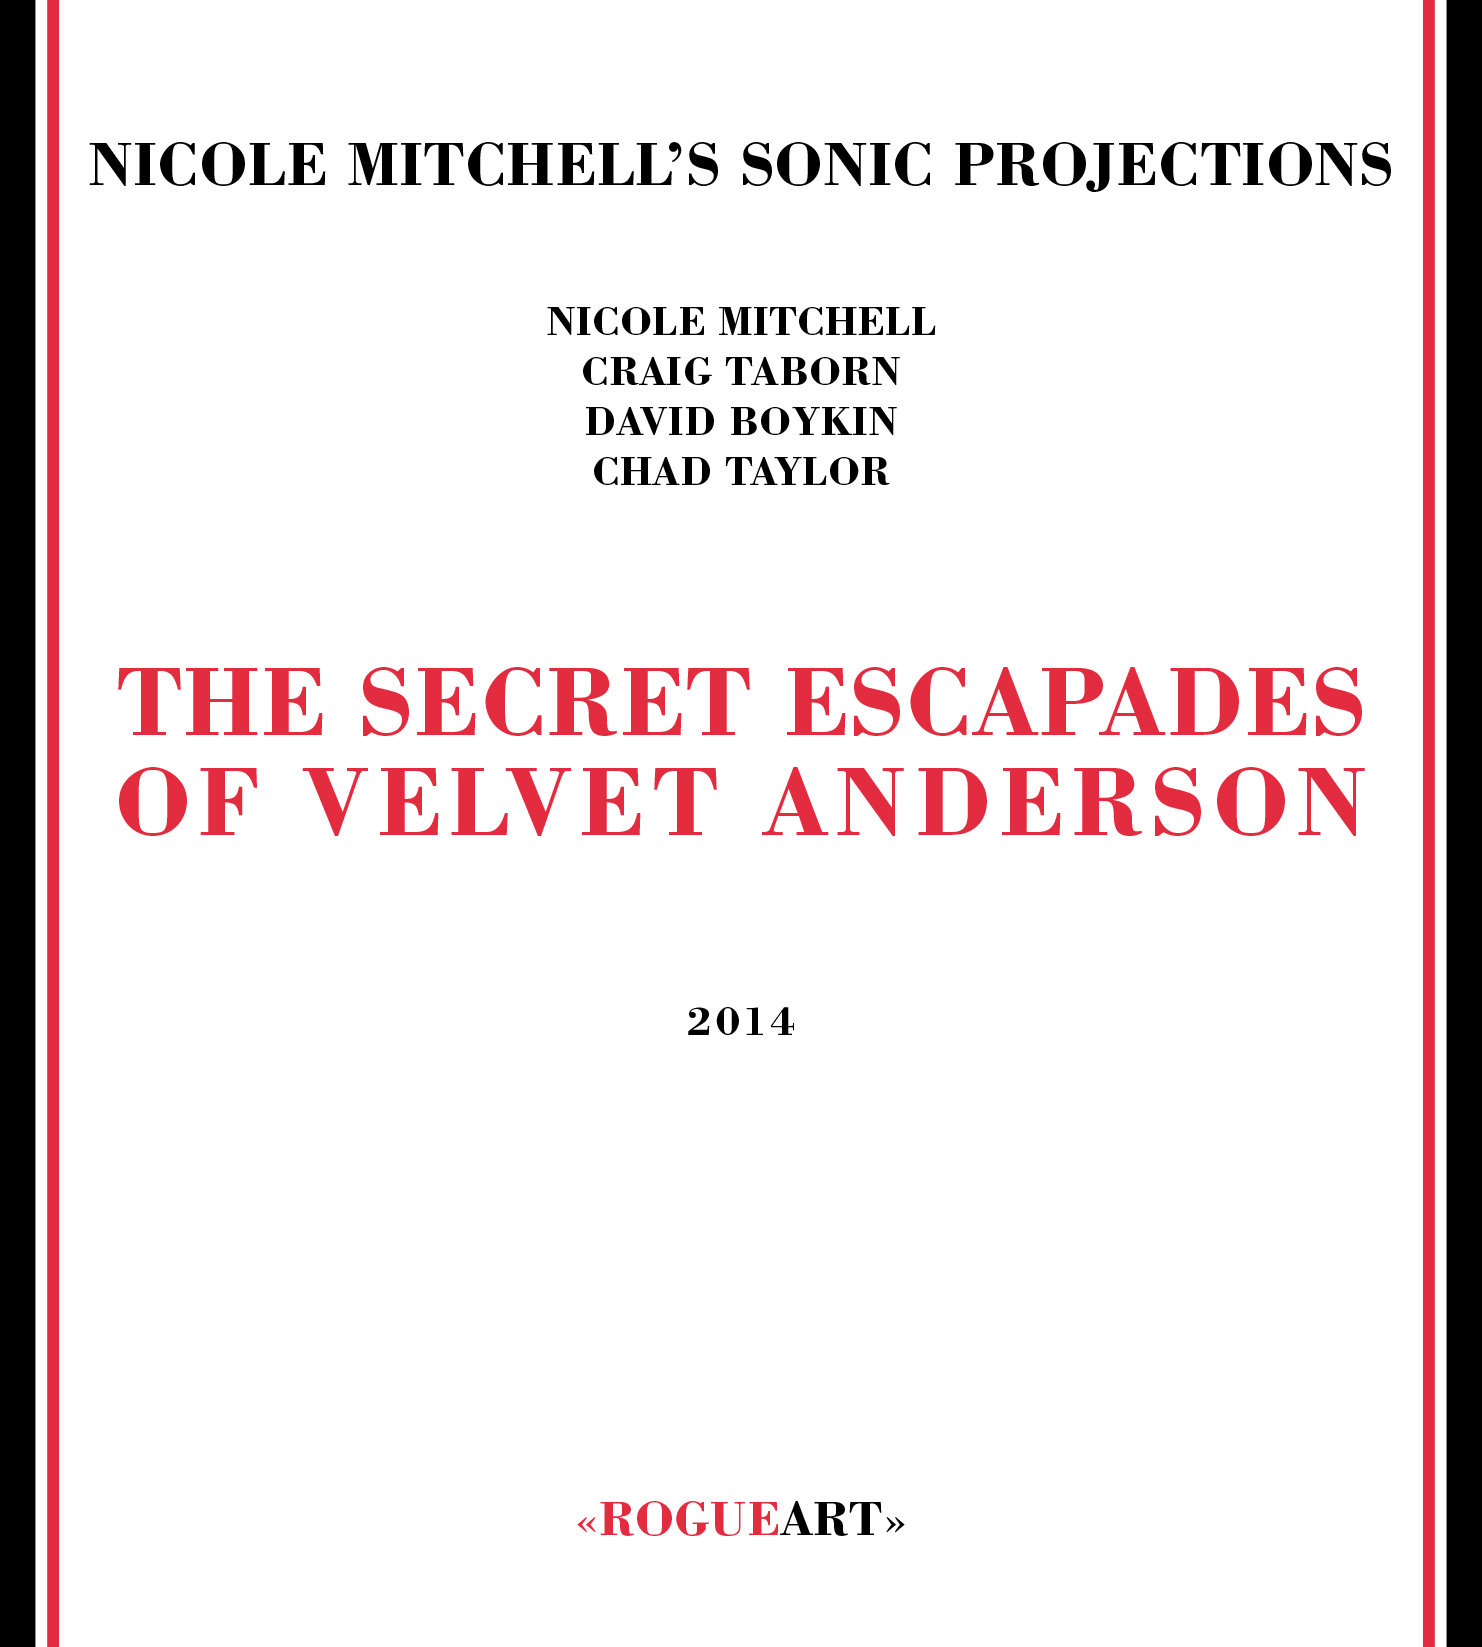 Front cover of the album THE SECRET ESCAPADES OF VELVET ANDERSON